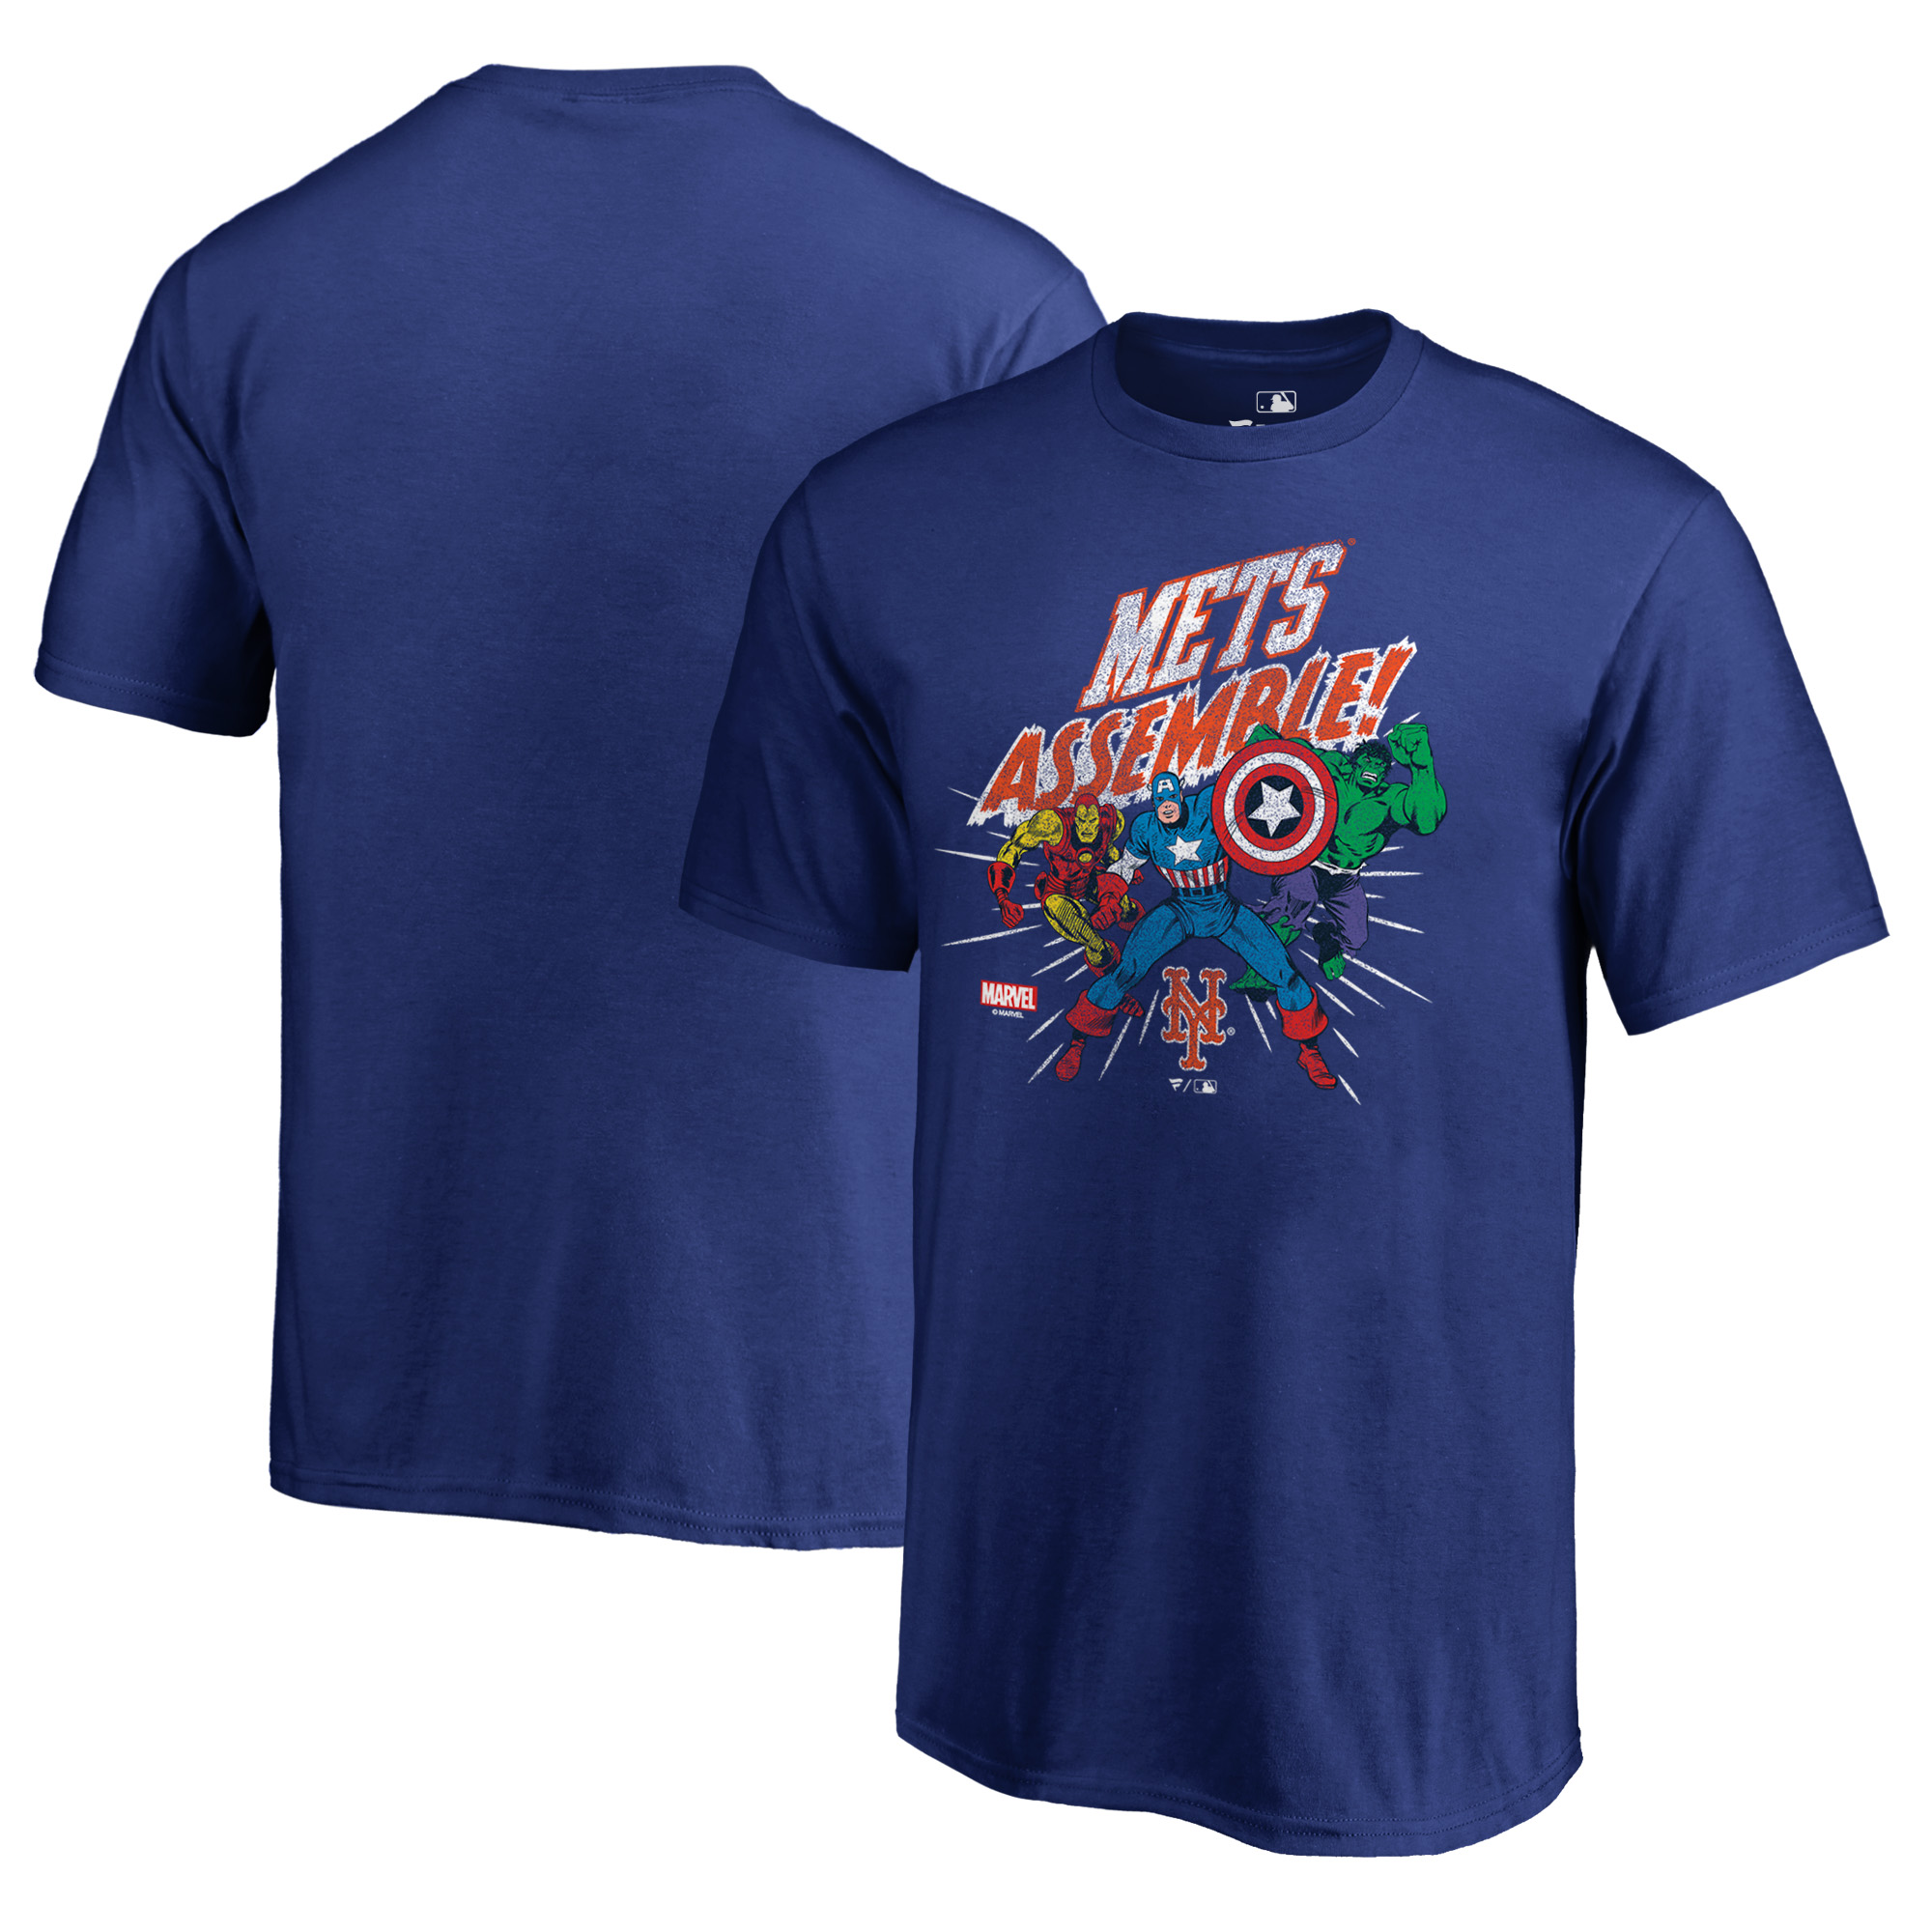 New York Mets Fanatics Branded Youth Marvel Avengers Assemble T-Shirt - Royal